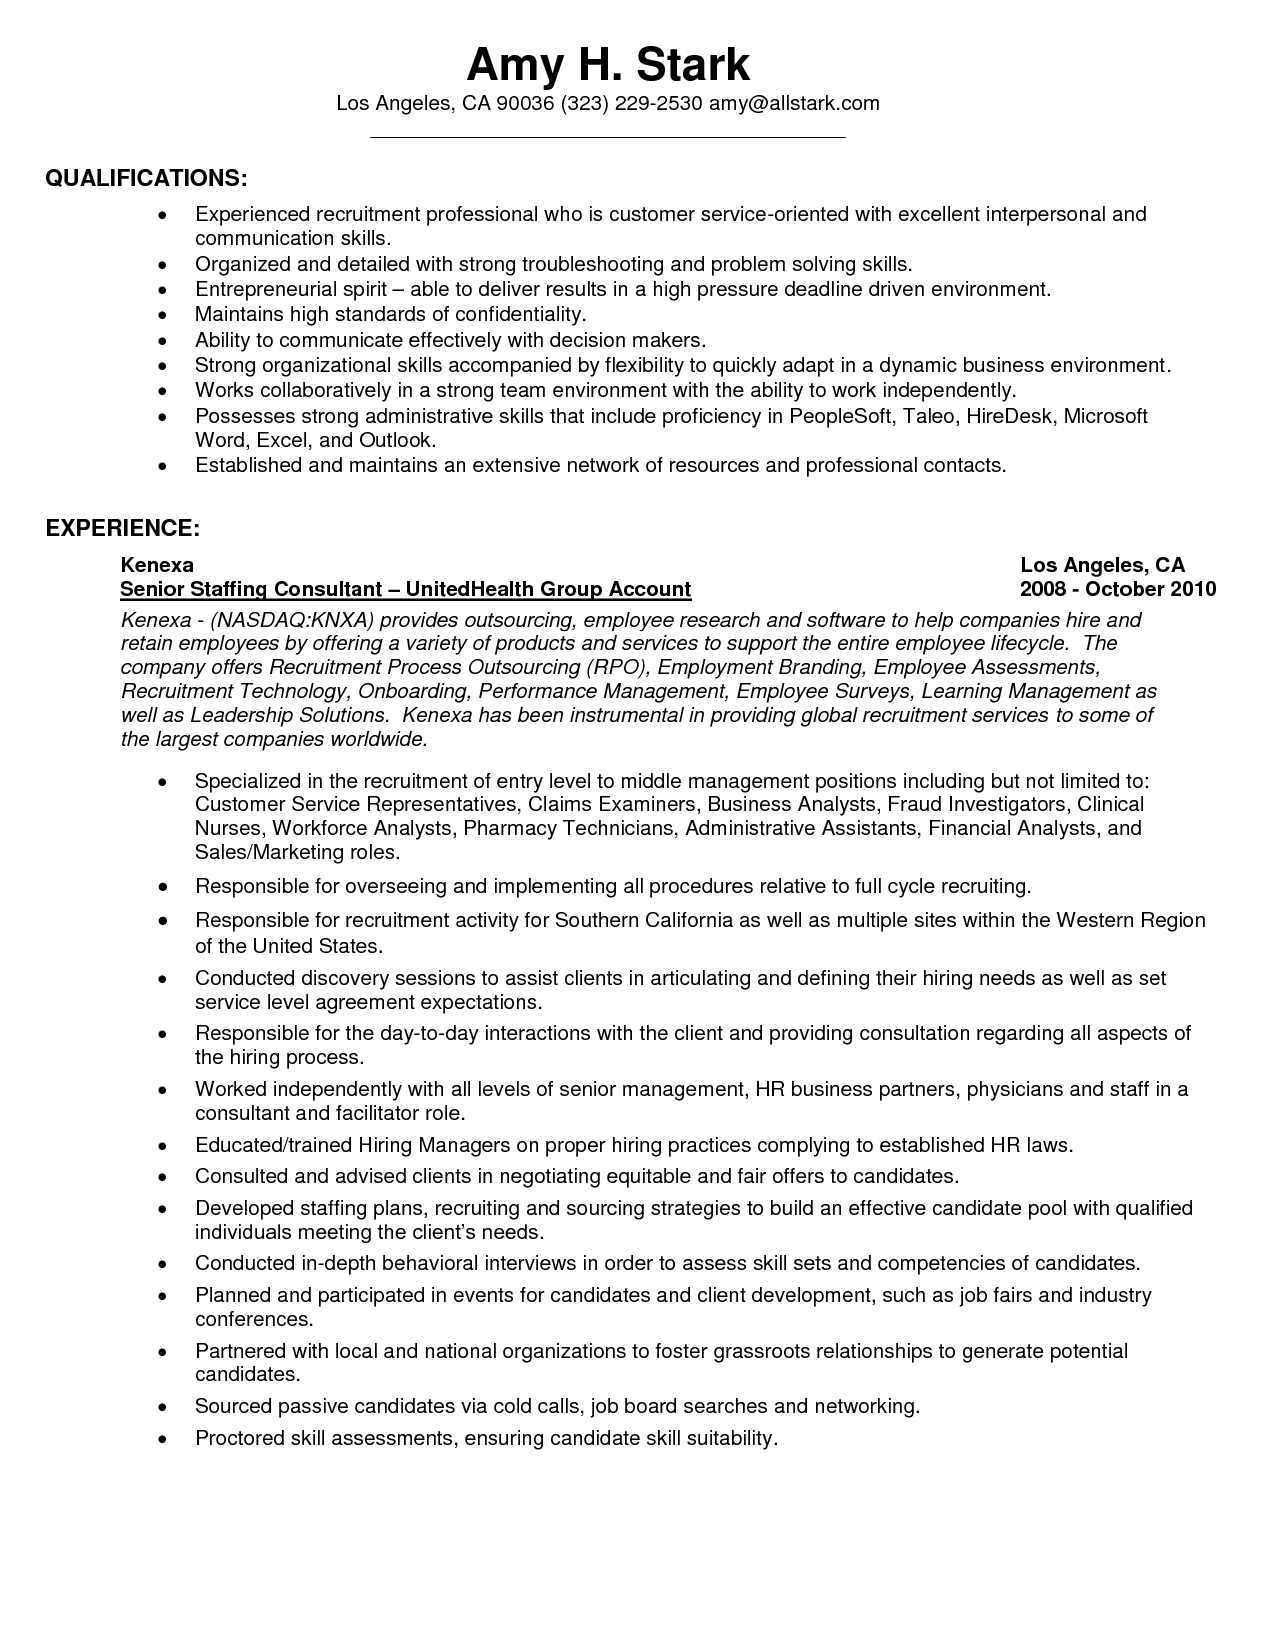 Job Skills Examples For Resume Excellent Customer Service Skills Resume Sample Resume Center